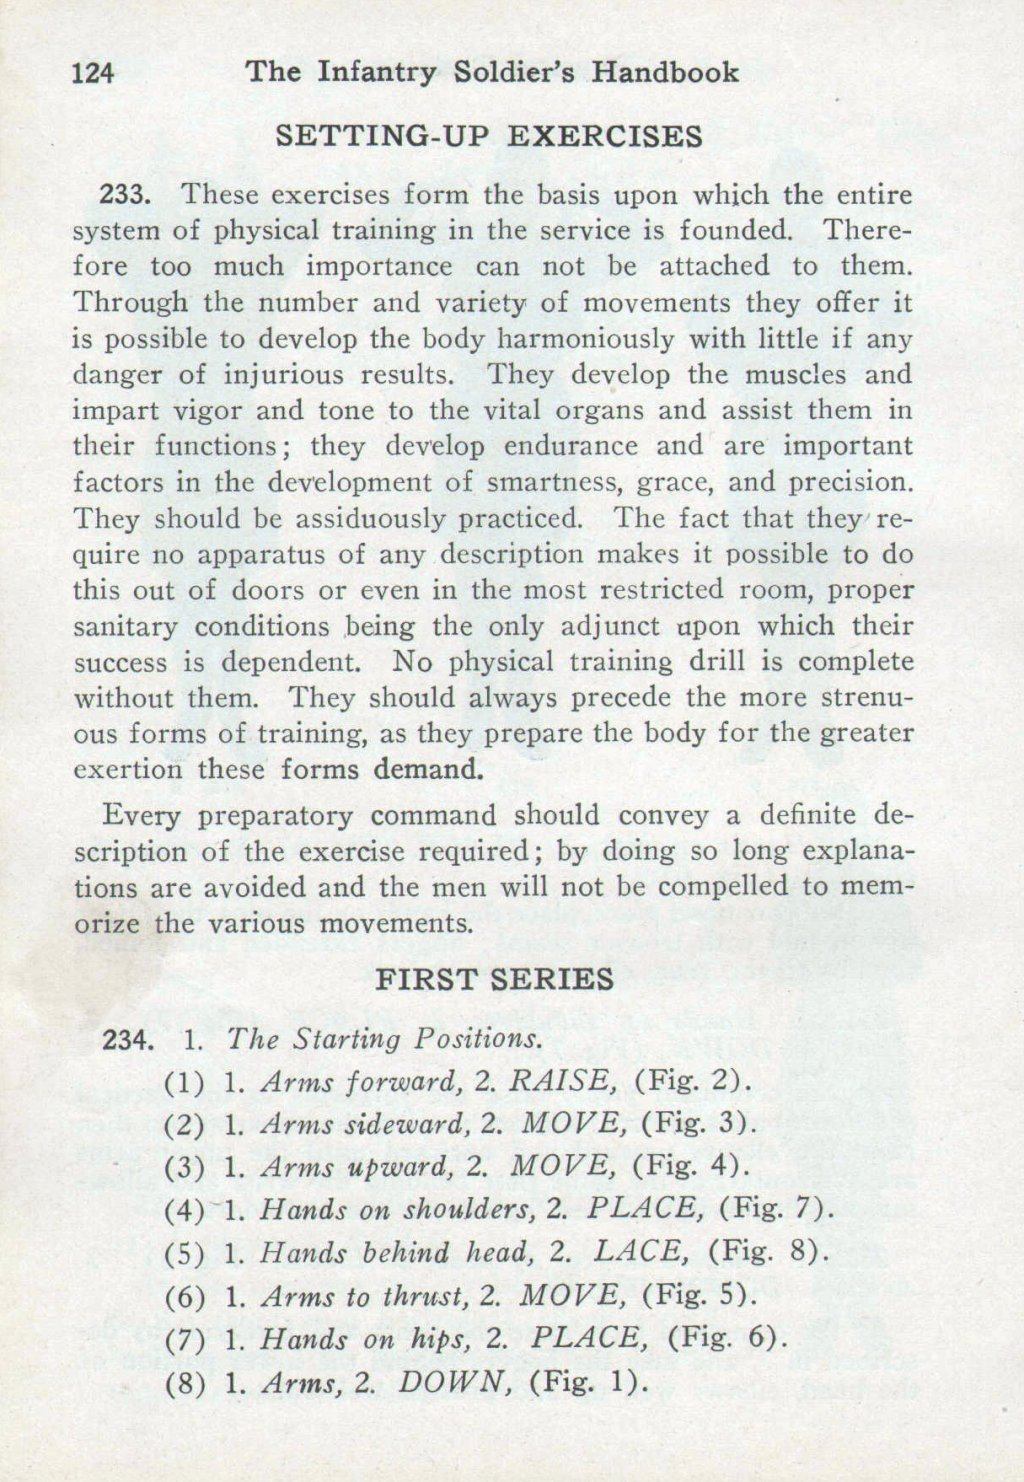 314th Infantry Regiment - Infantry Soldiers Handbook - Waldron - Page 124